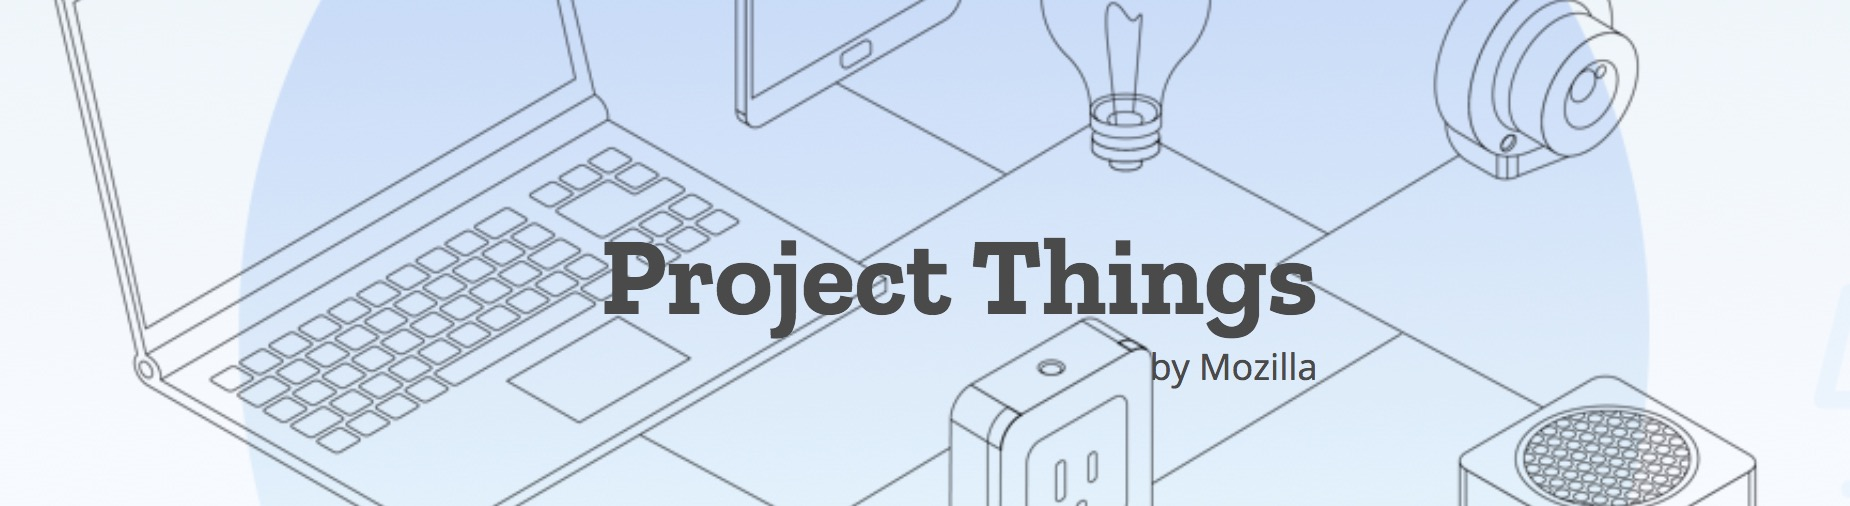 project-things-iot-smart-home-mozilla